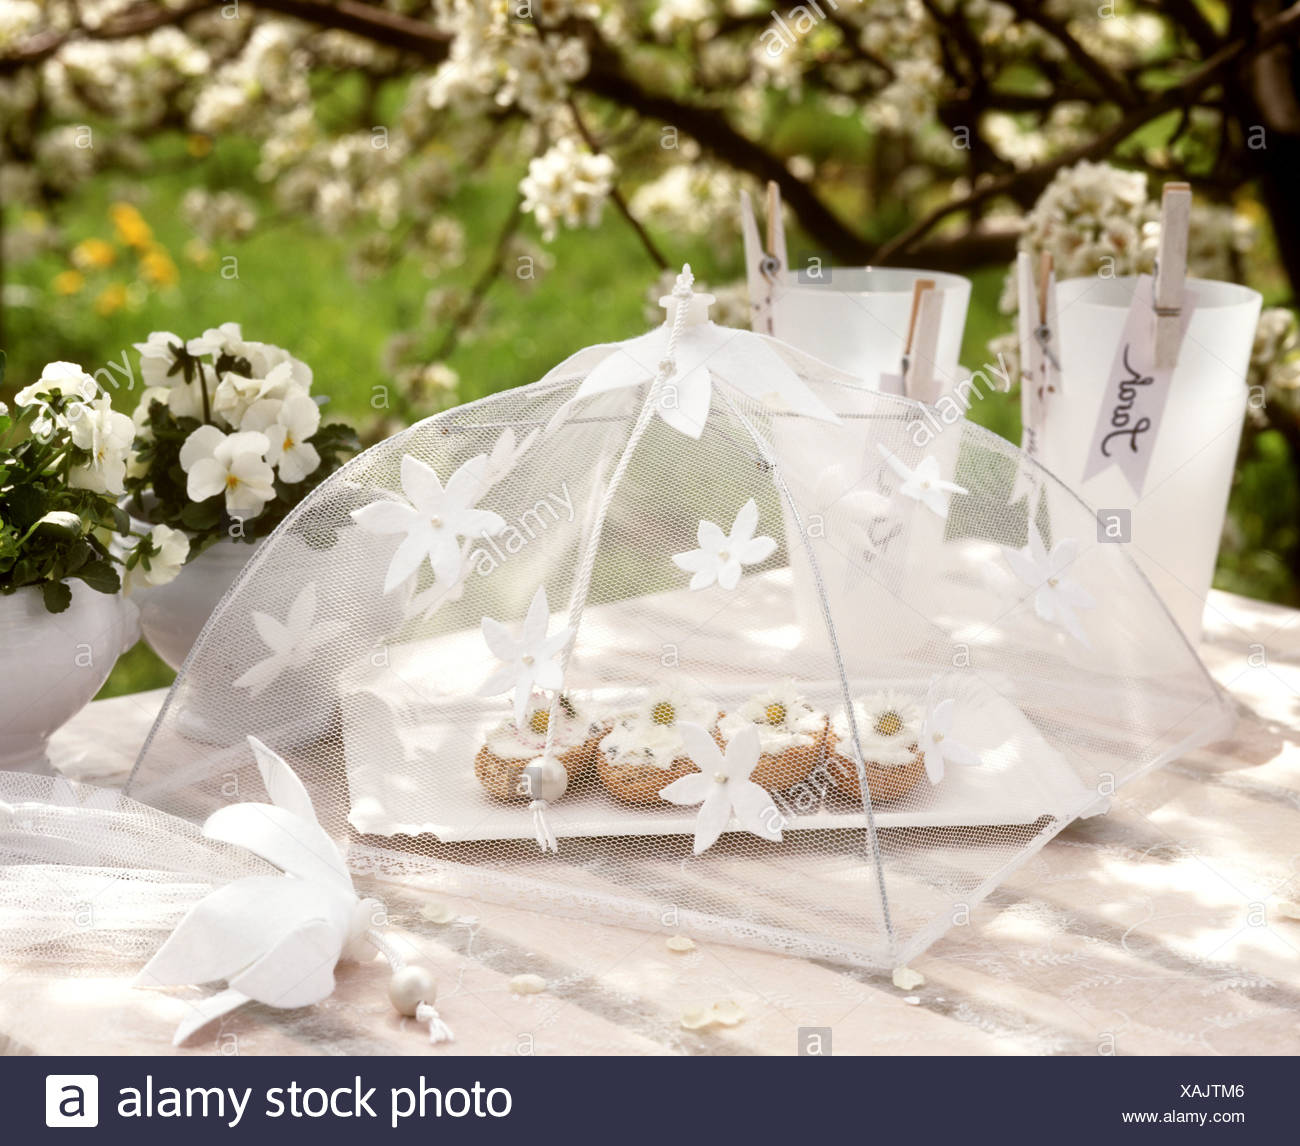 White Spring Table Decoration Roll Soft Cheese Under Cover Stock